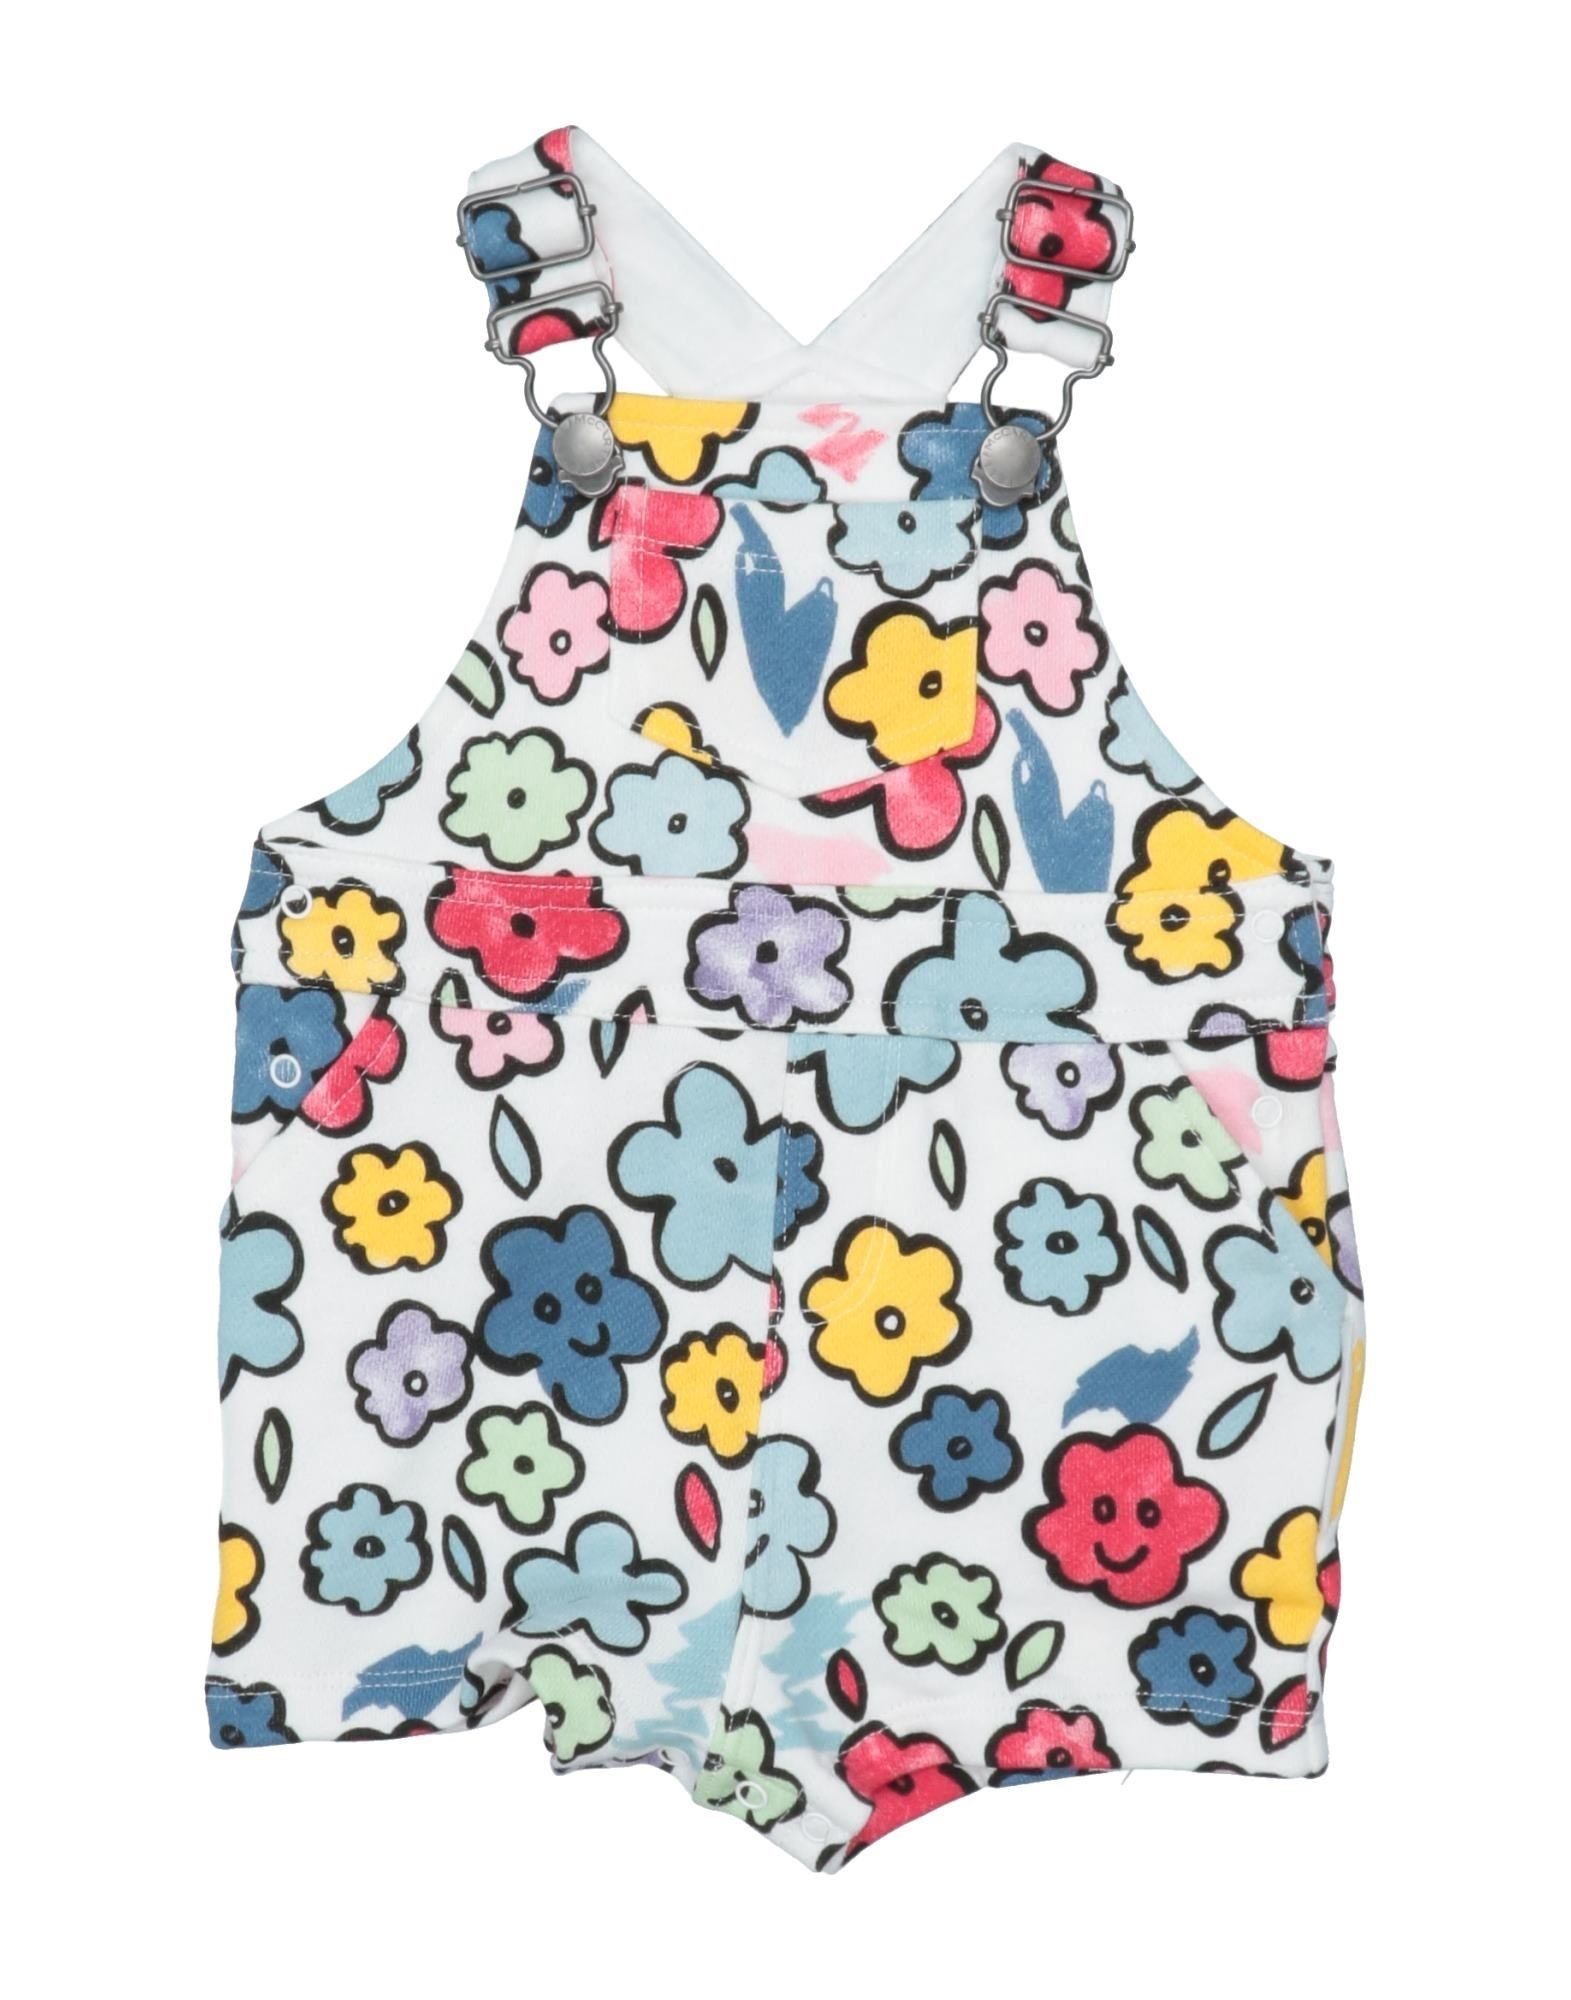 STELLA McCARTNEY KIDS Baby overalls. sweatshirt fleece, logo, floral design, overalls top, sleeveless, french terry lining, wash at 30degree c, do not dry clean, iron at 150degree c max, do not bleach, do not tumble dry. 100% Cotton